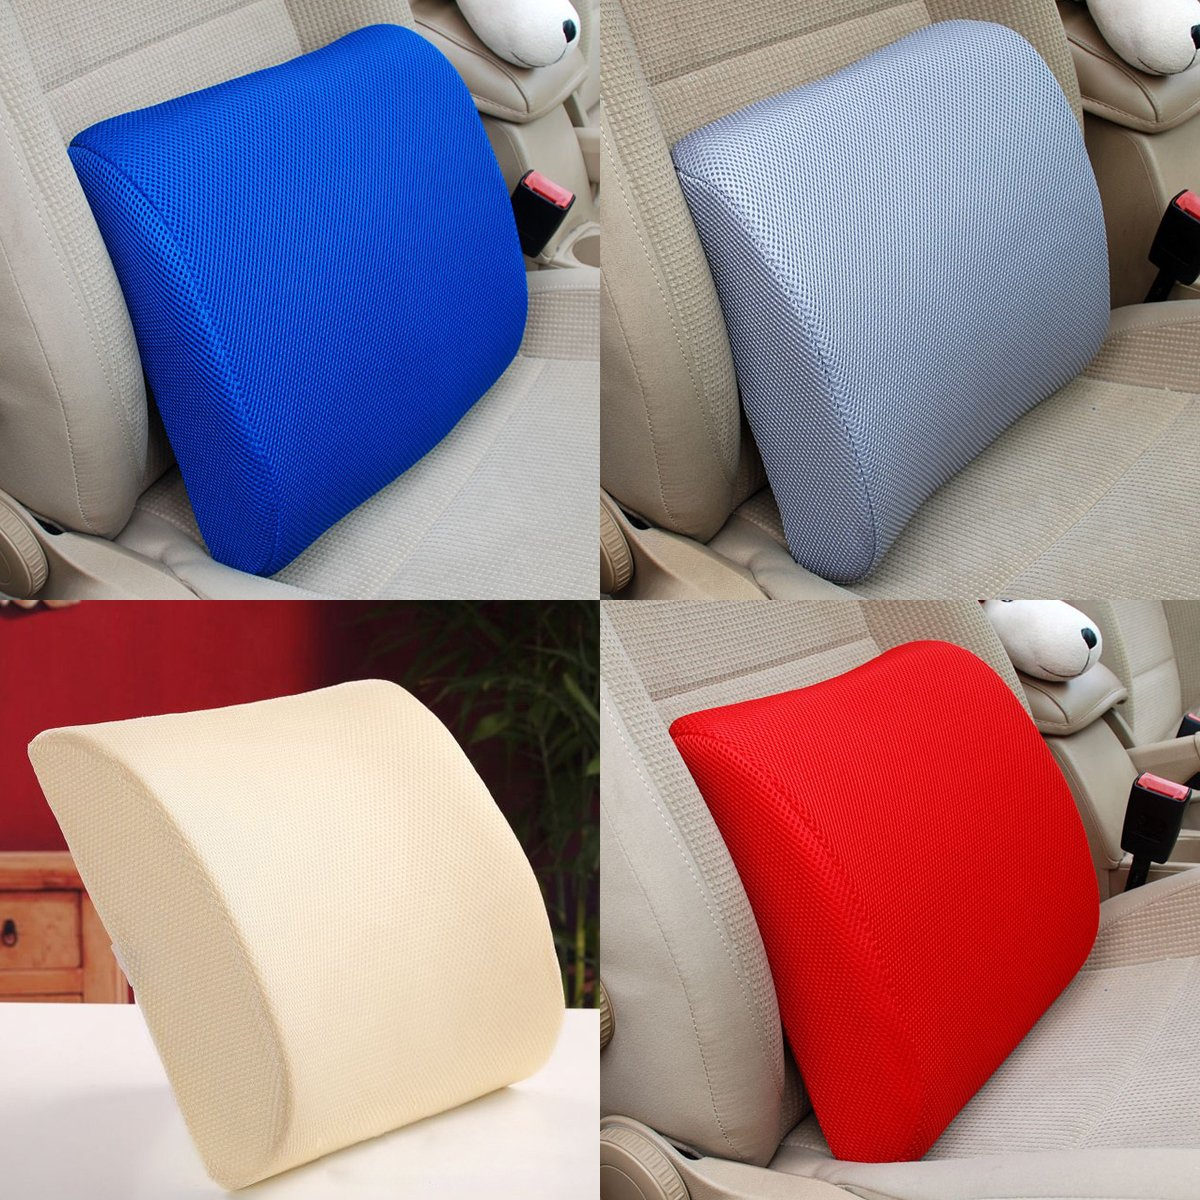 Excellent High Resilient Memory Foam Blue Car Office Seat Back Pain Support Cushion Pillow Pad Chair Lumbar Lower ache